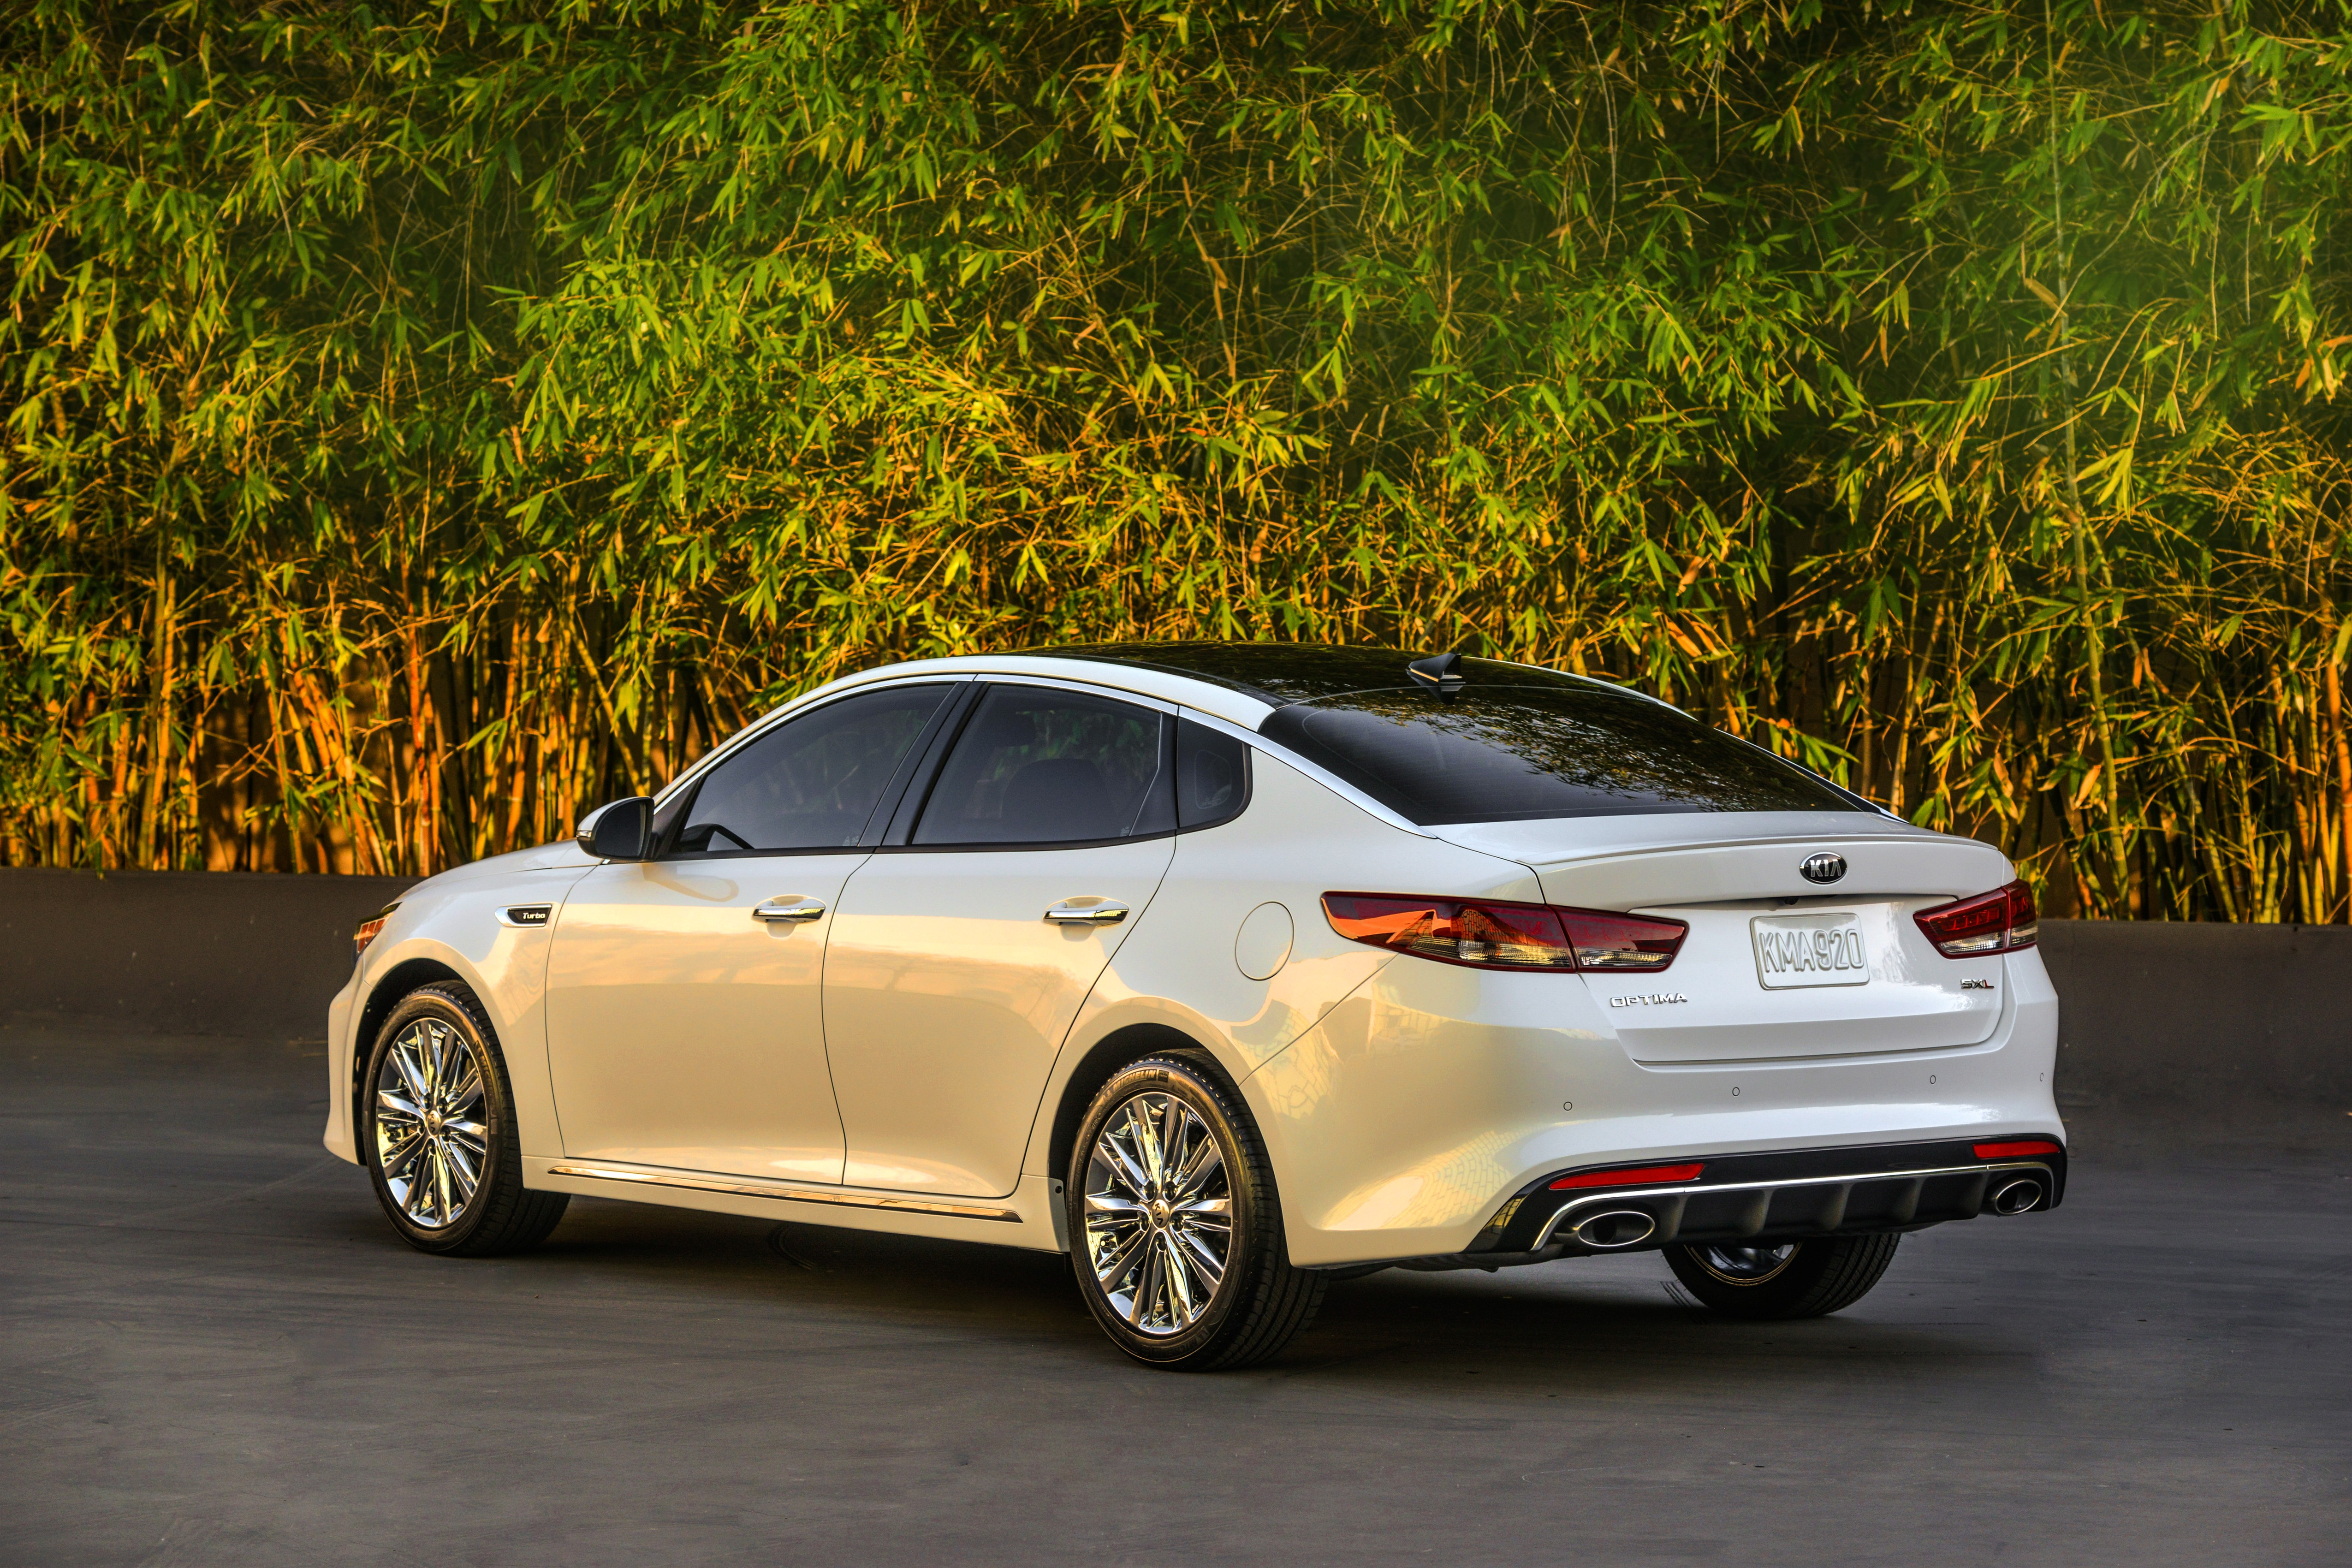 test spin review quick side sxl optima sx limited kia drive